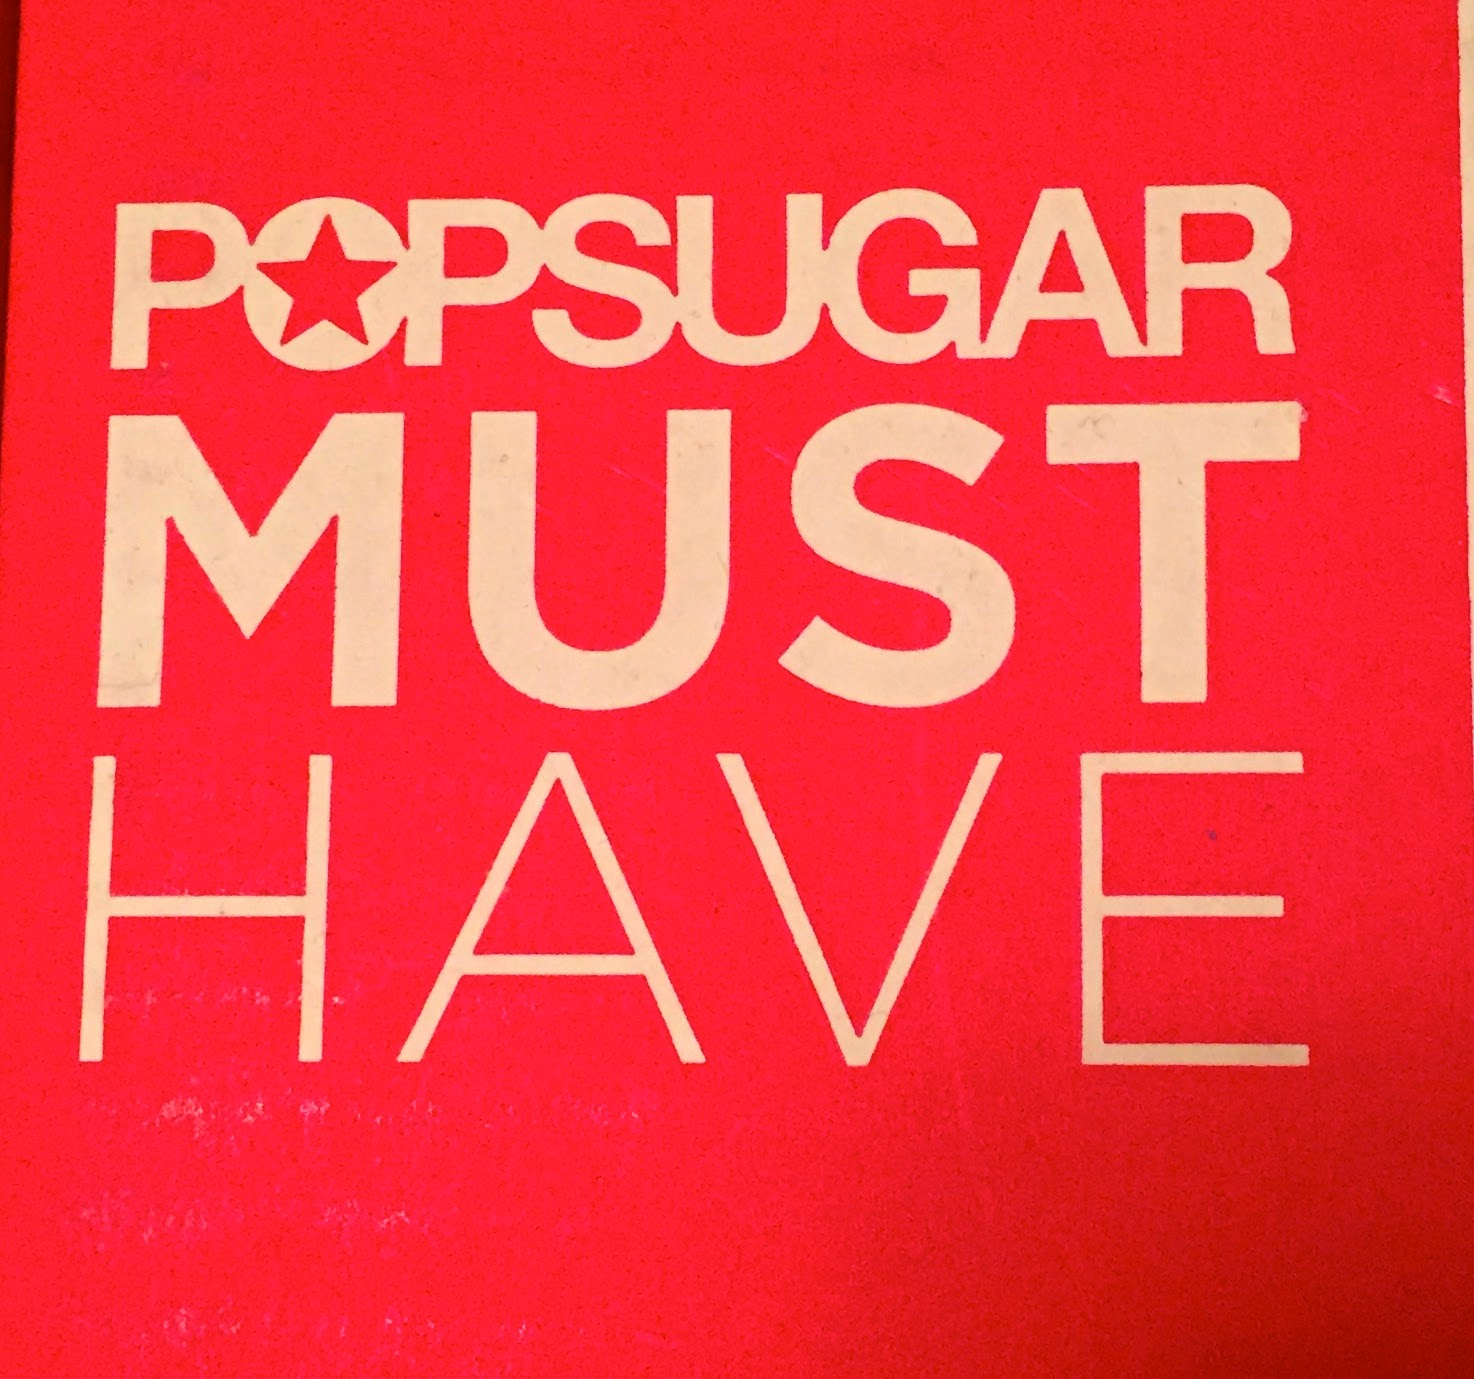 popsugar must have box, subscription box review, popsugar must have box review, review on popsugar, cute ideas,